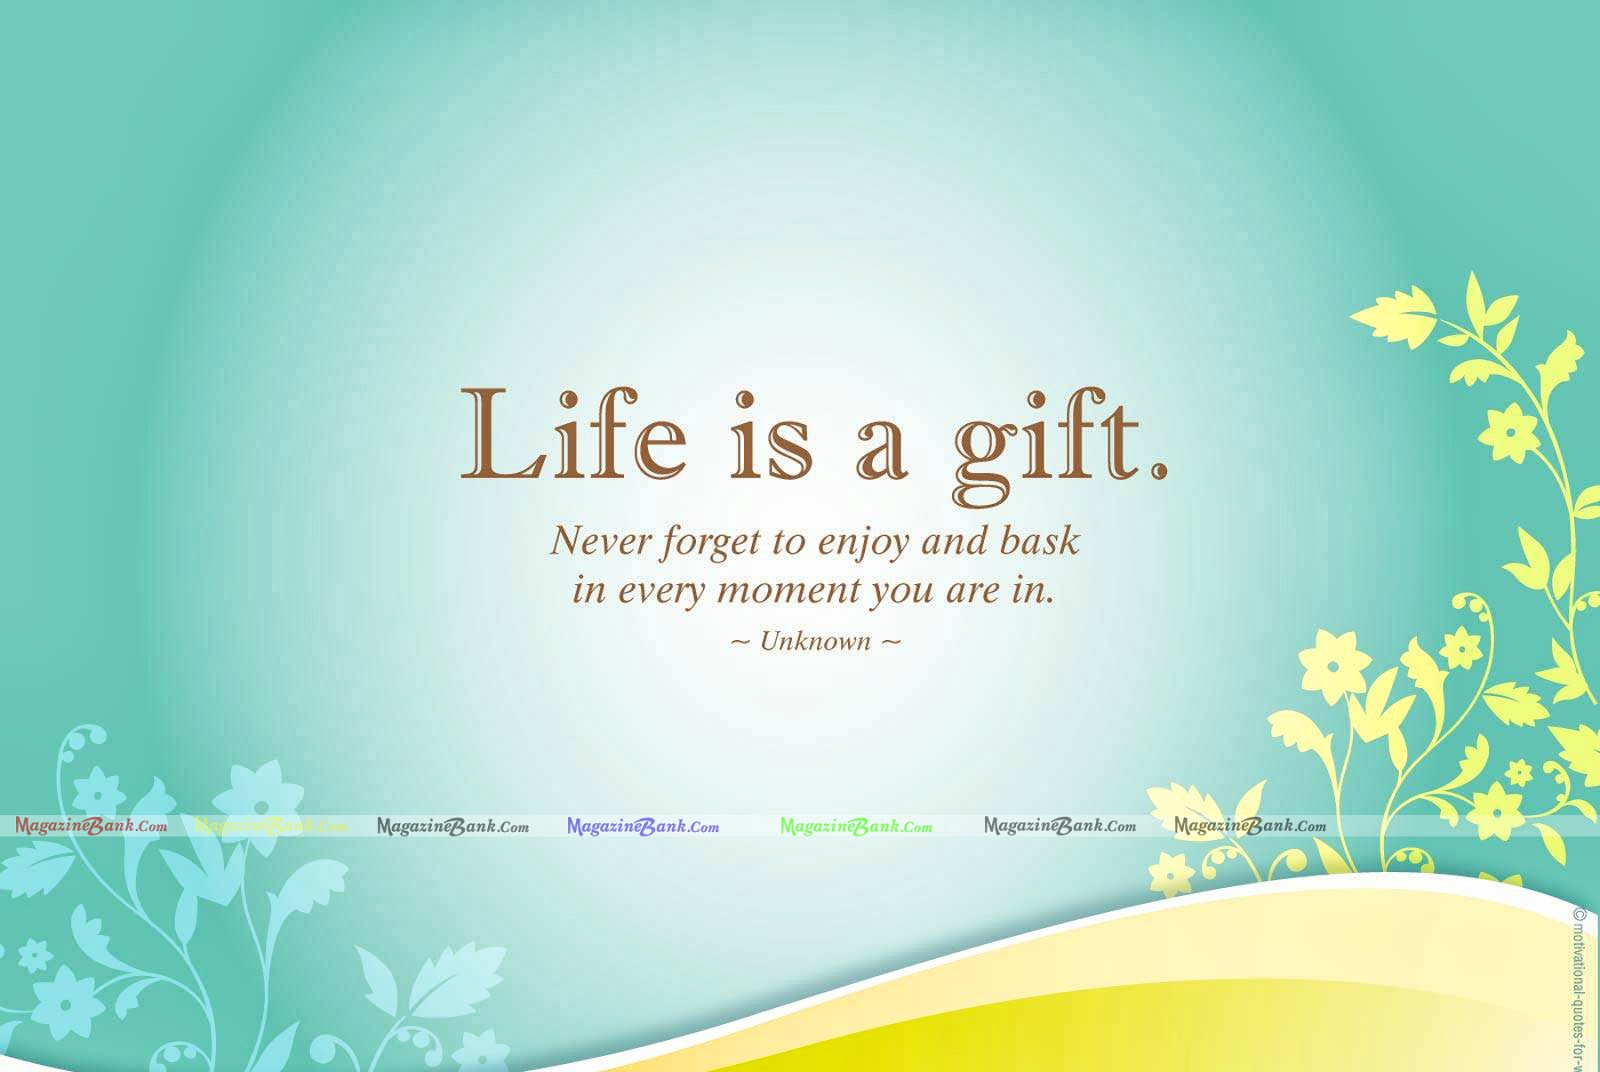 Wonderful Life Quotes Entrancing Life Picture And Wonderful Quote  Inspiring Quotes And Words In Life